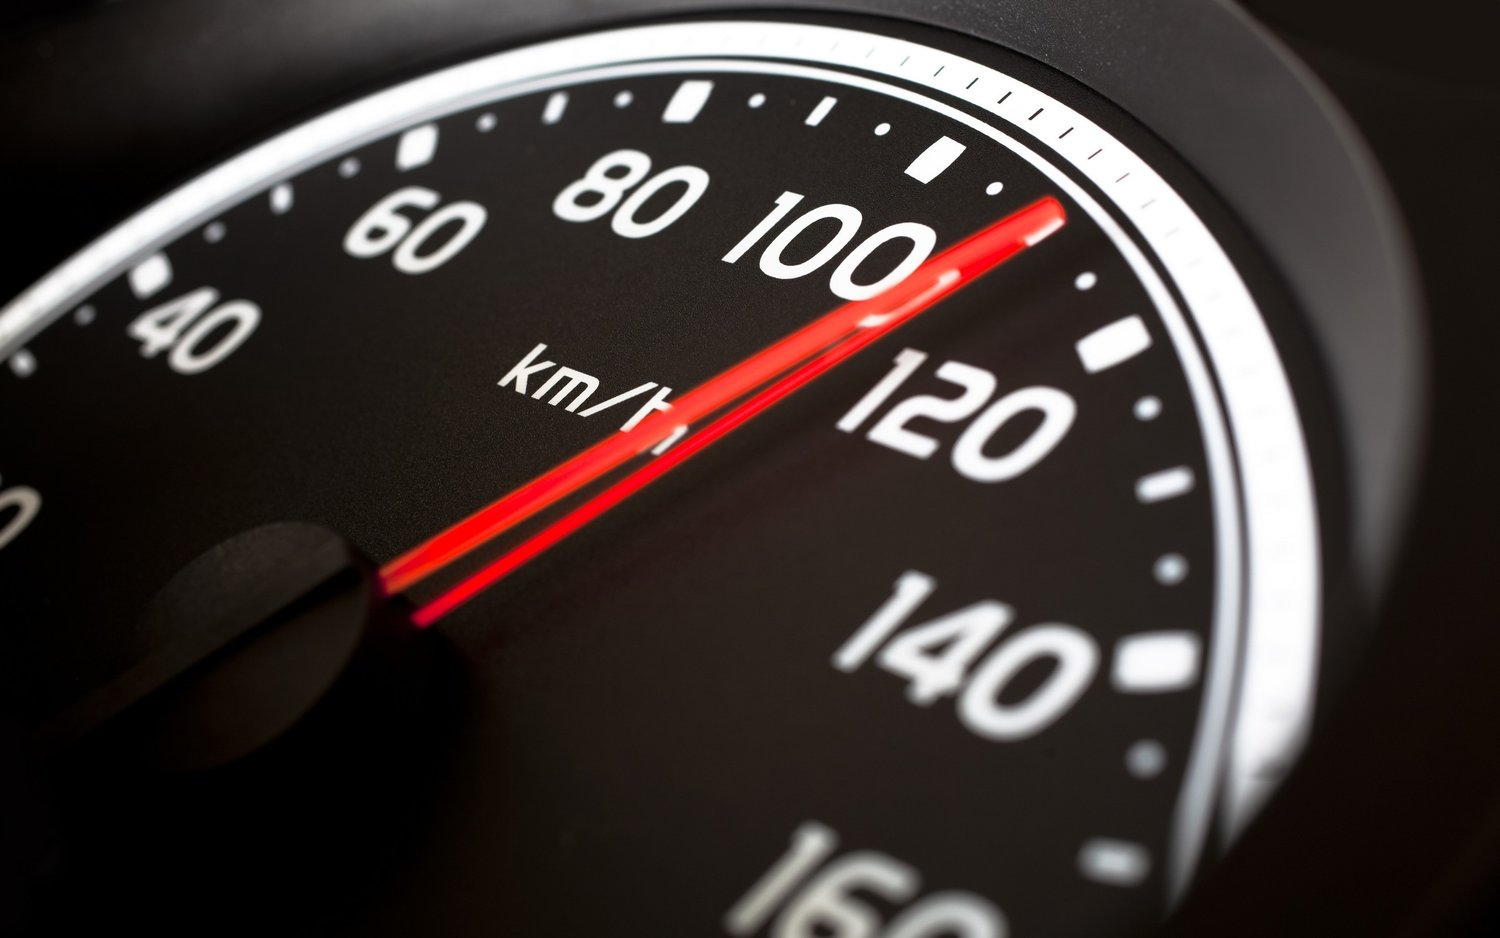 How Accurate is My Car's Speedo? — Auto Expert by John